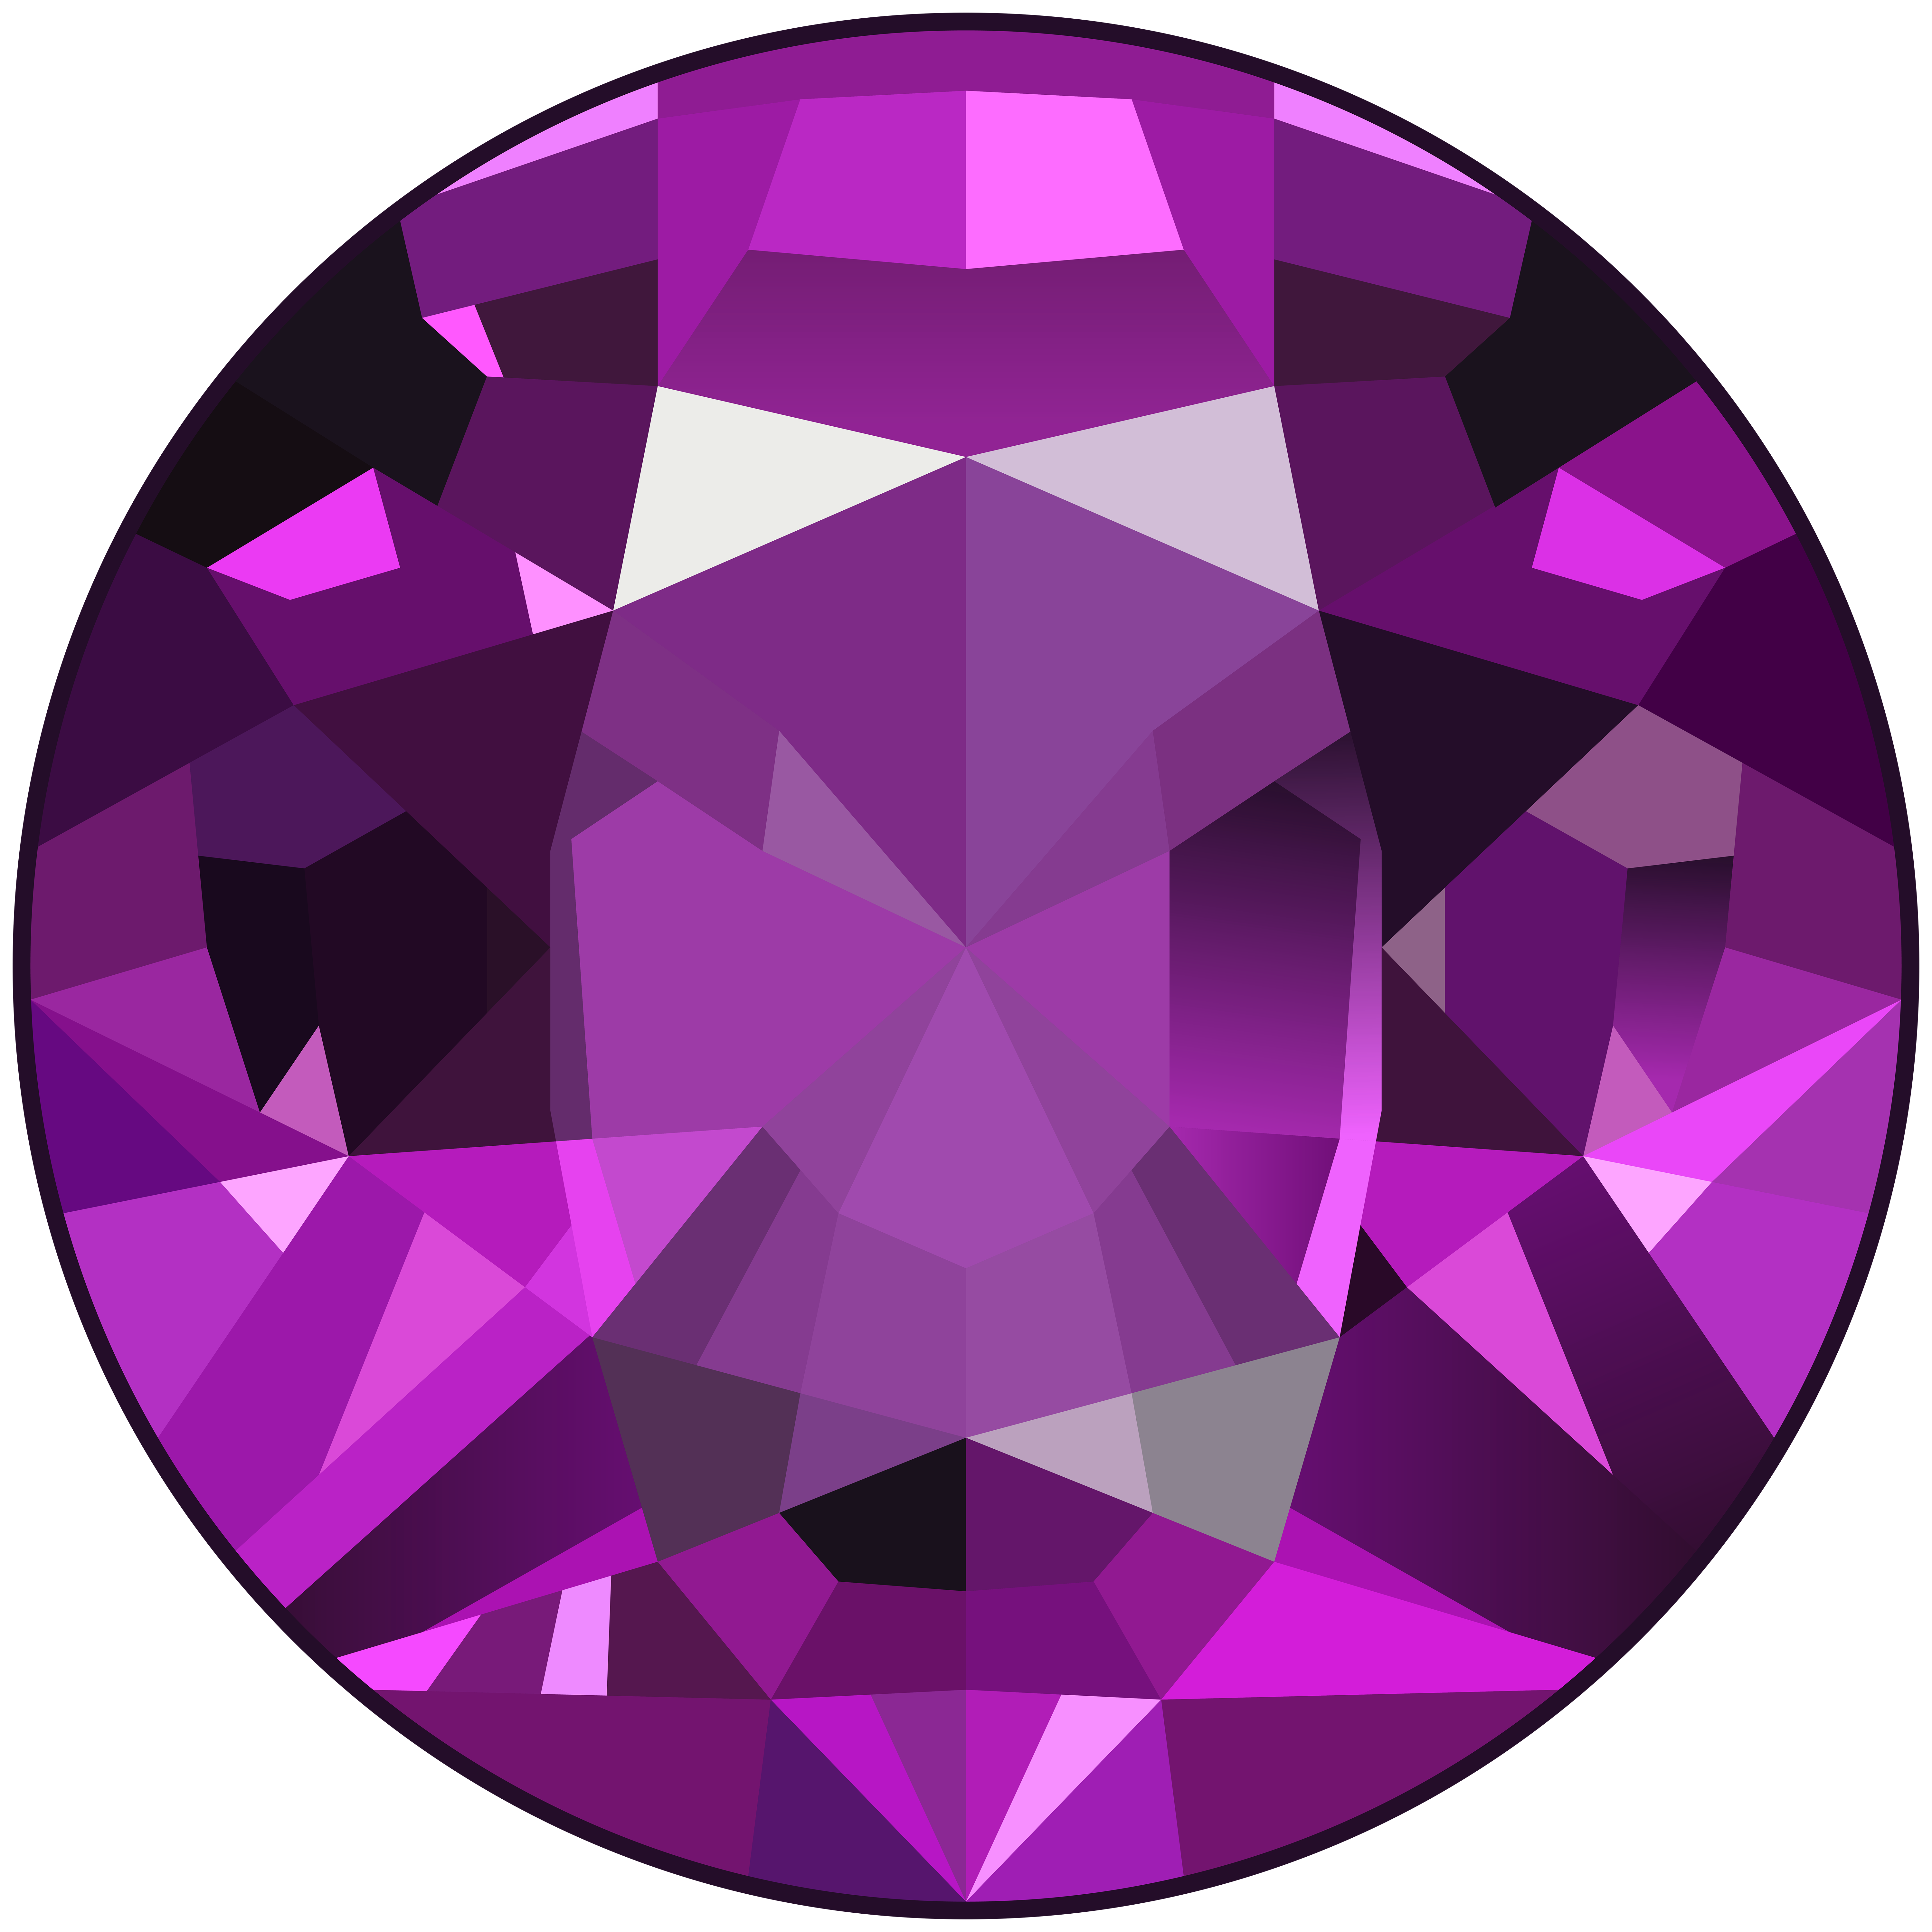 Treasure clipart pile diamond. Collection of free gems